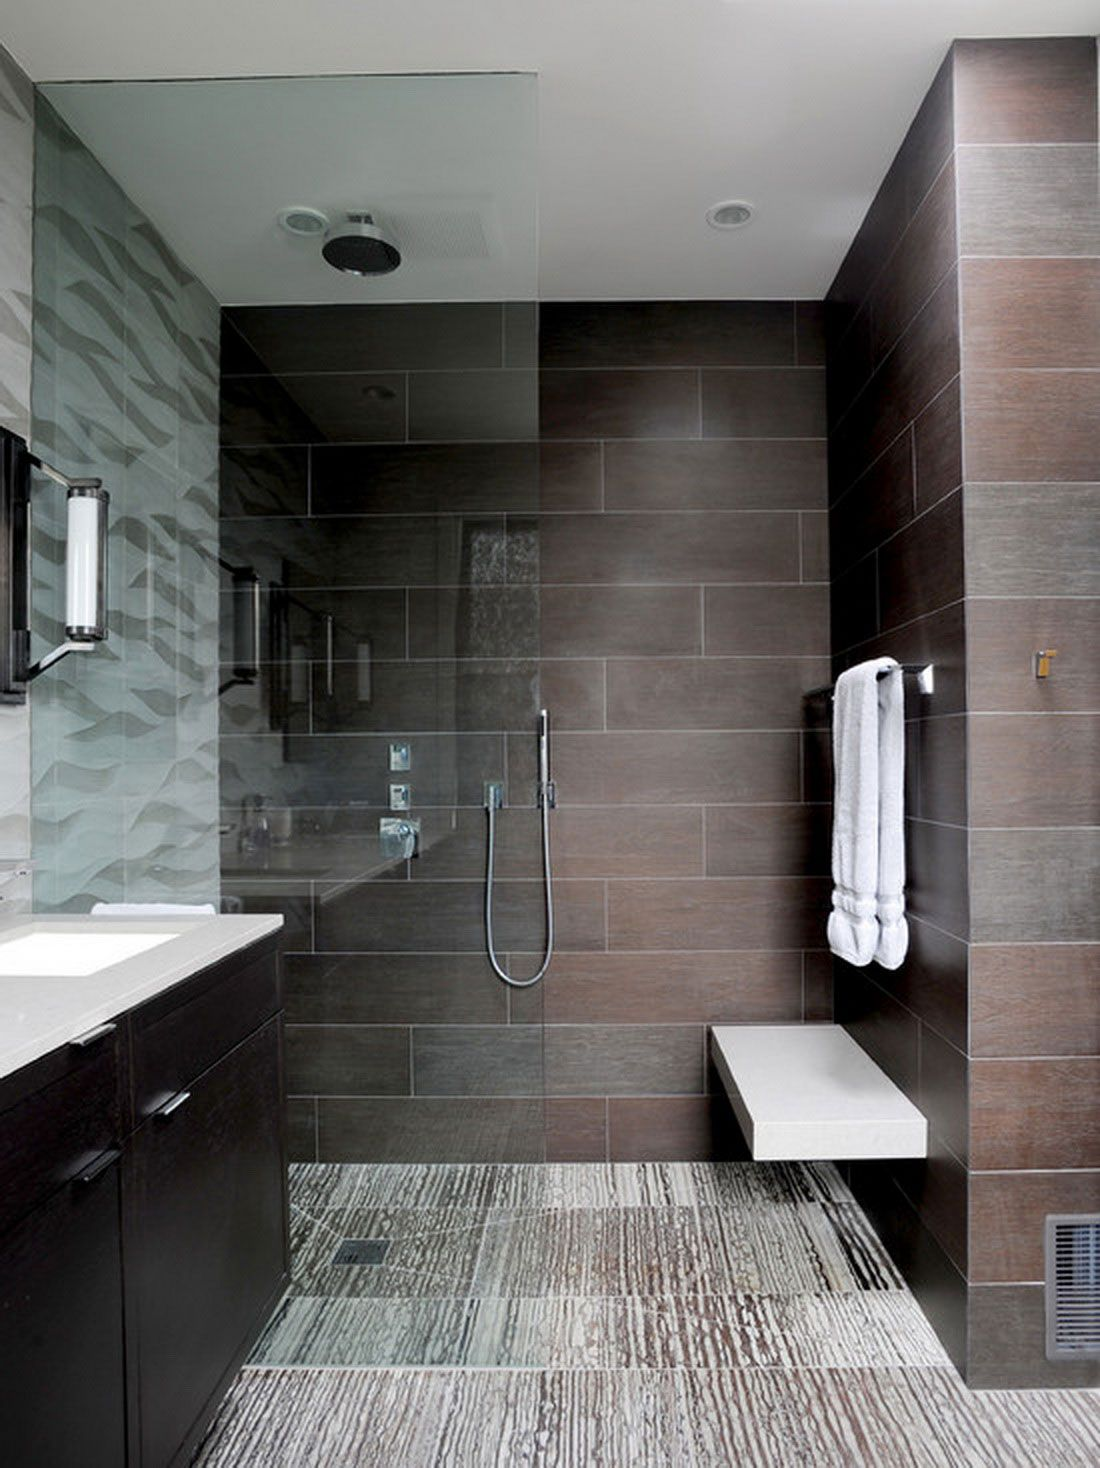 Whole Bathroom Shower - Glass panel for stylish walk in shower ideas inside cozy bathroom with black vanity and white